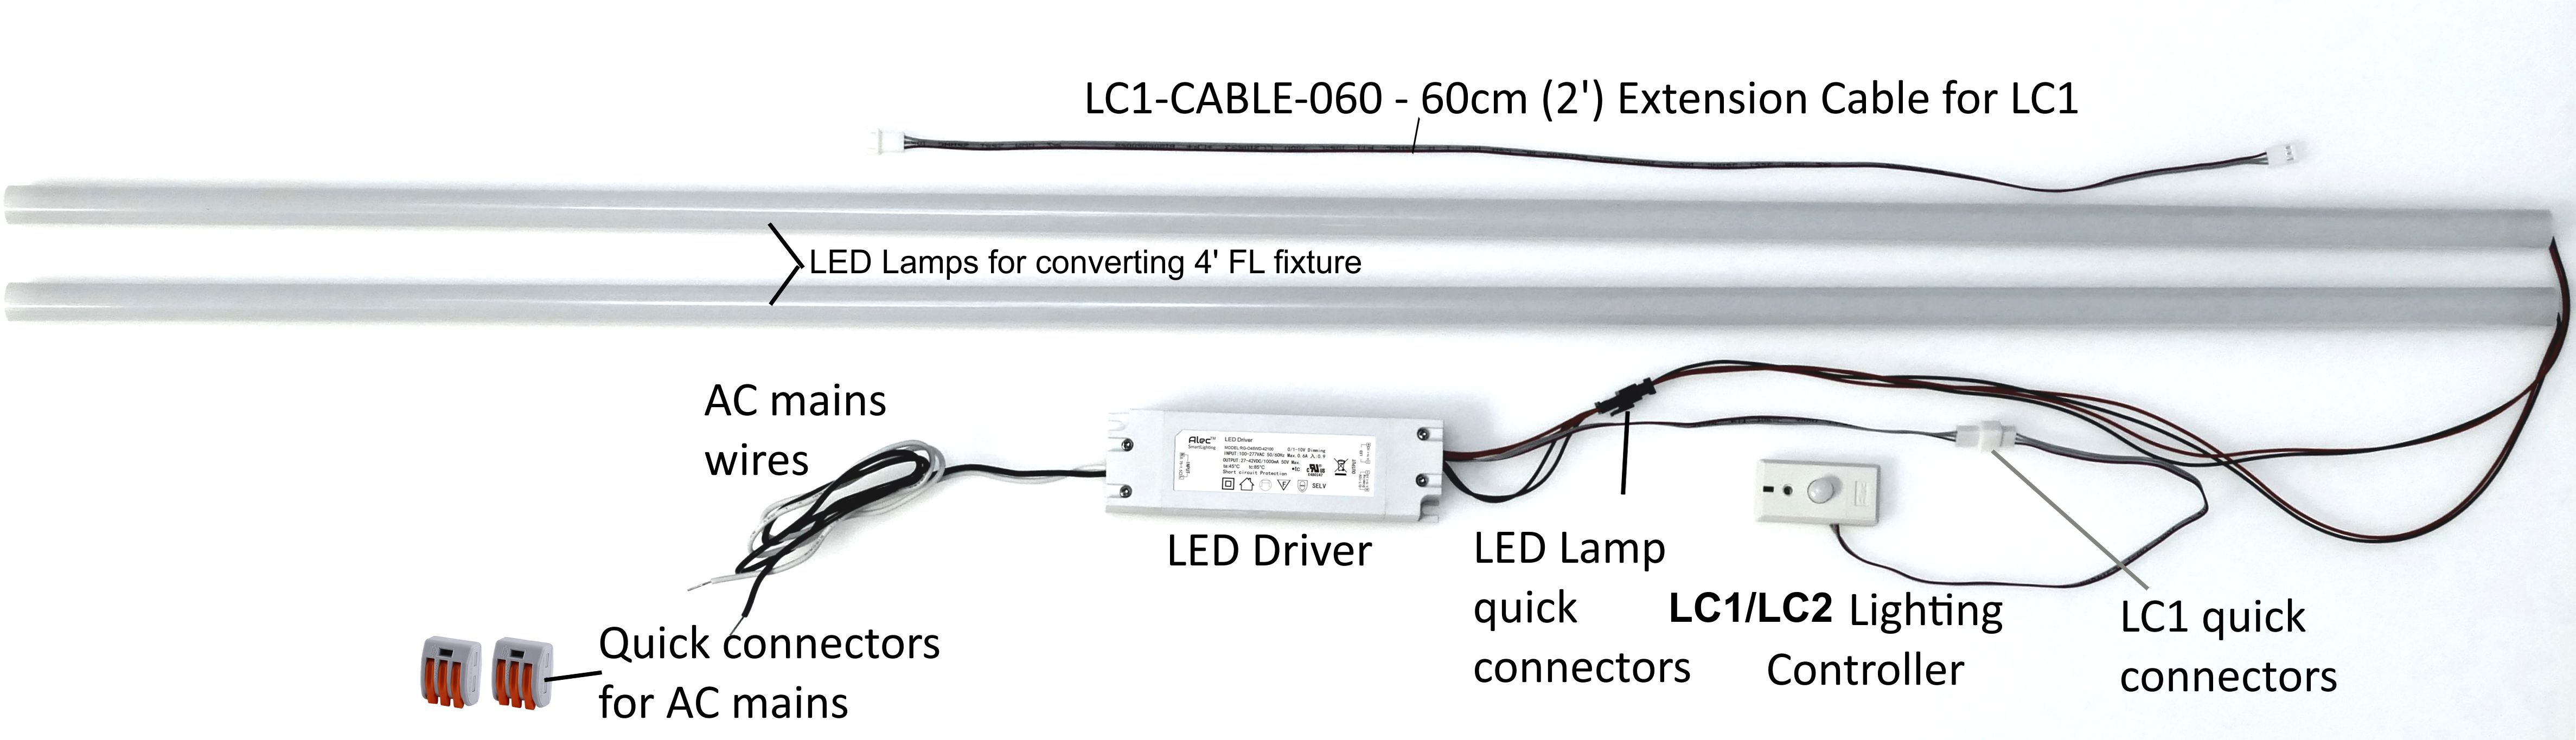 Led Office Lighting Fixture Wiring Diagram - Wiring Diagrams on